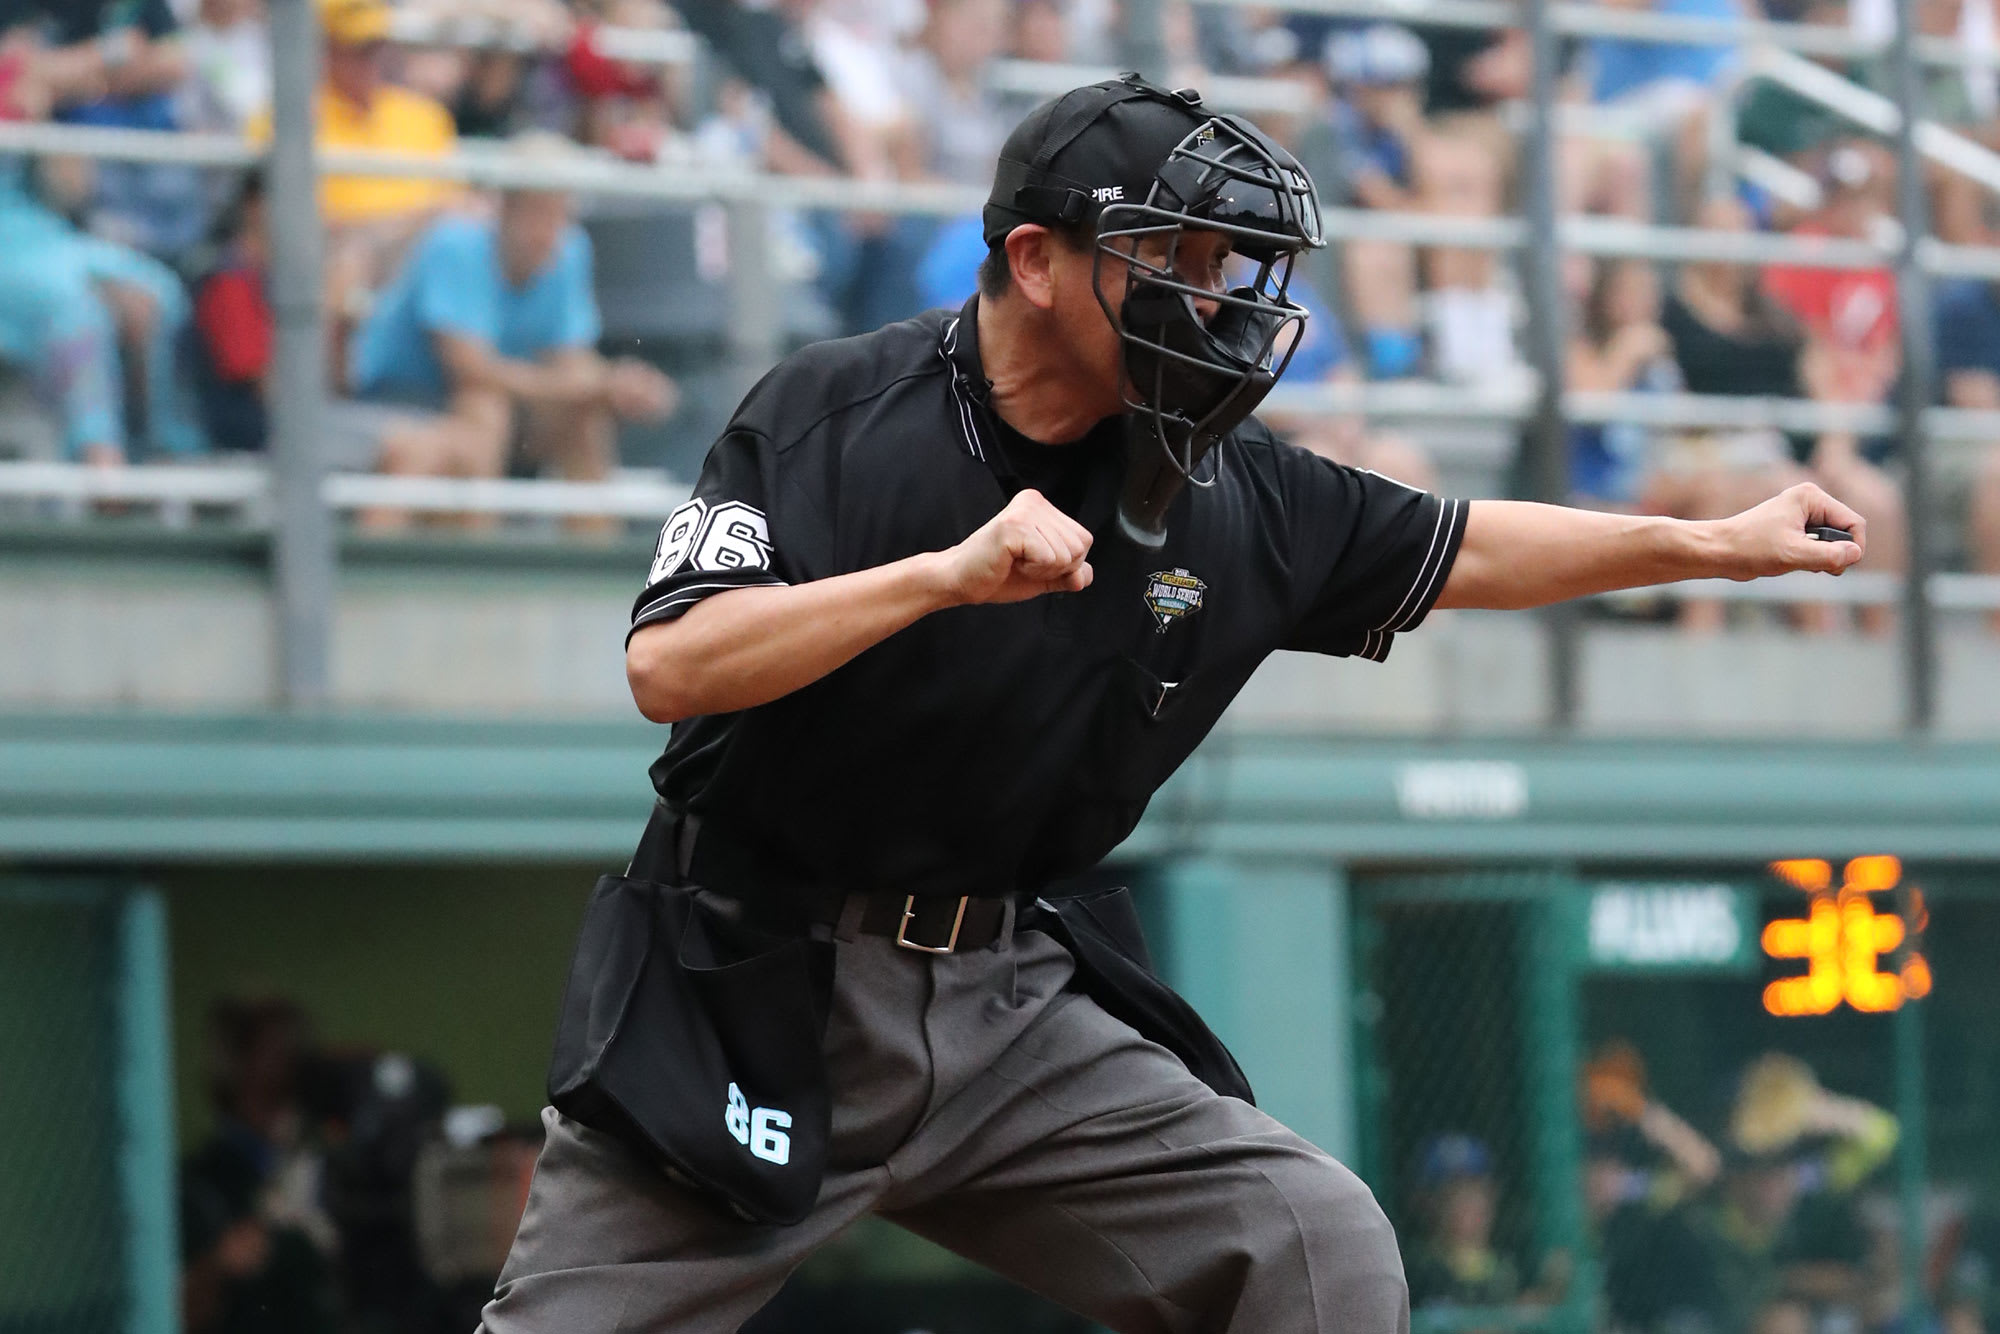 umpire at plate